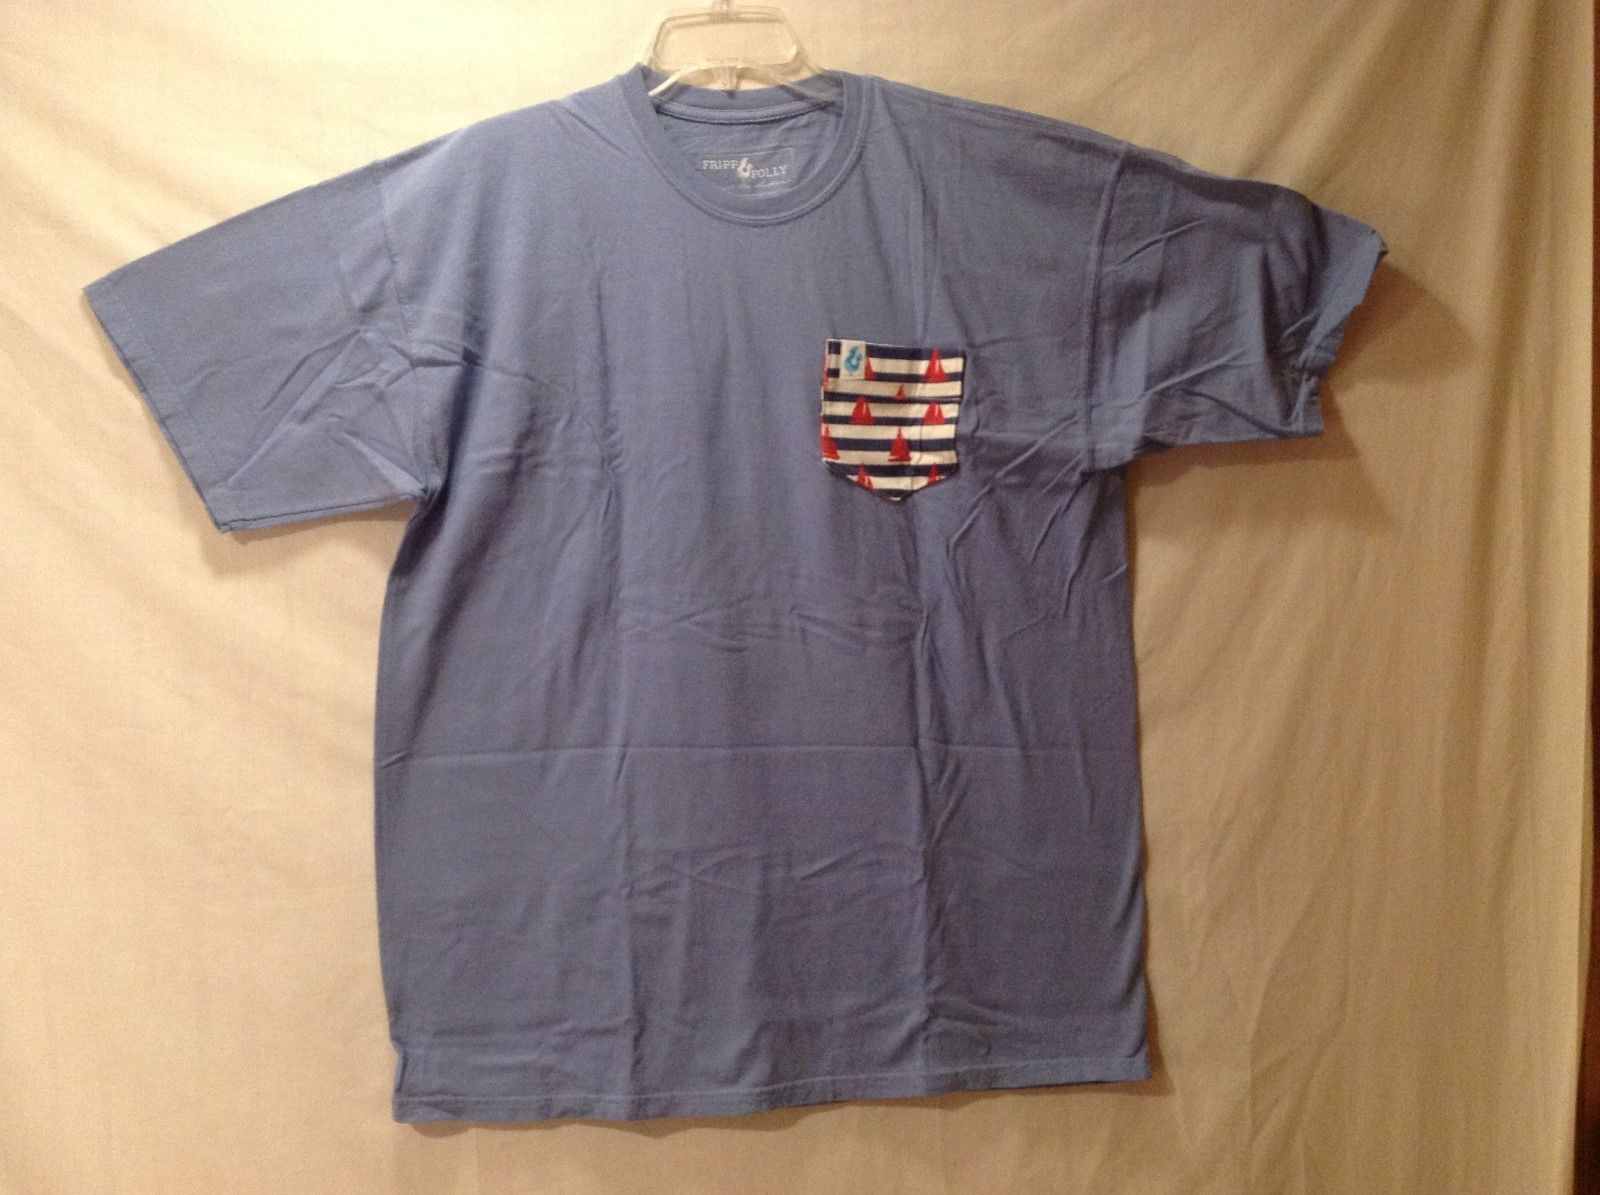 FRIPP FOLLY Slate Blue T-shirt Size XL